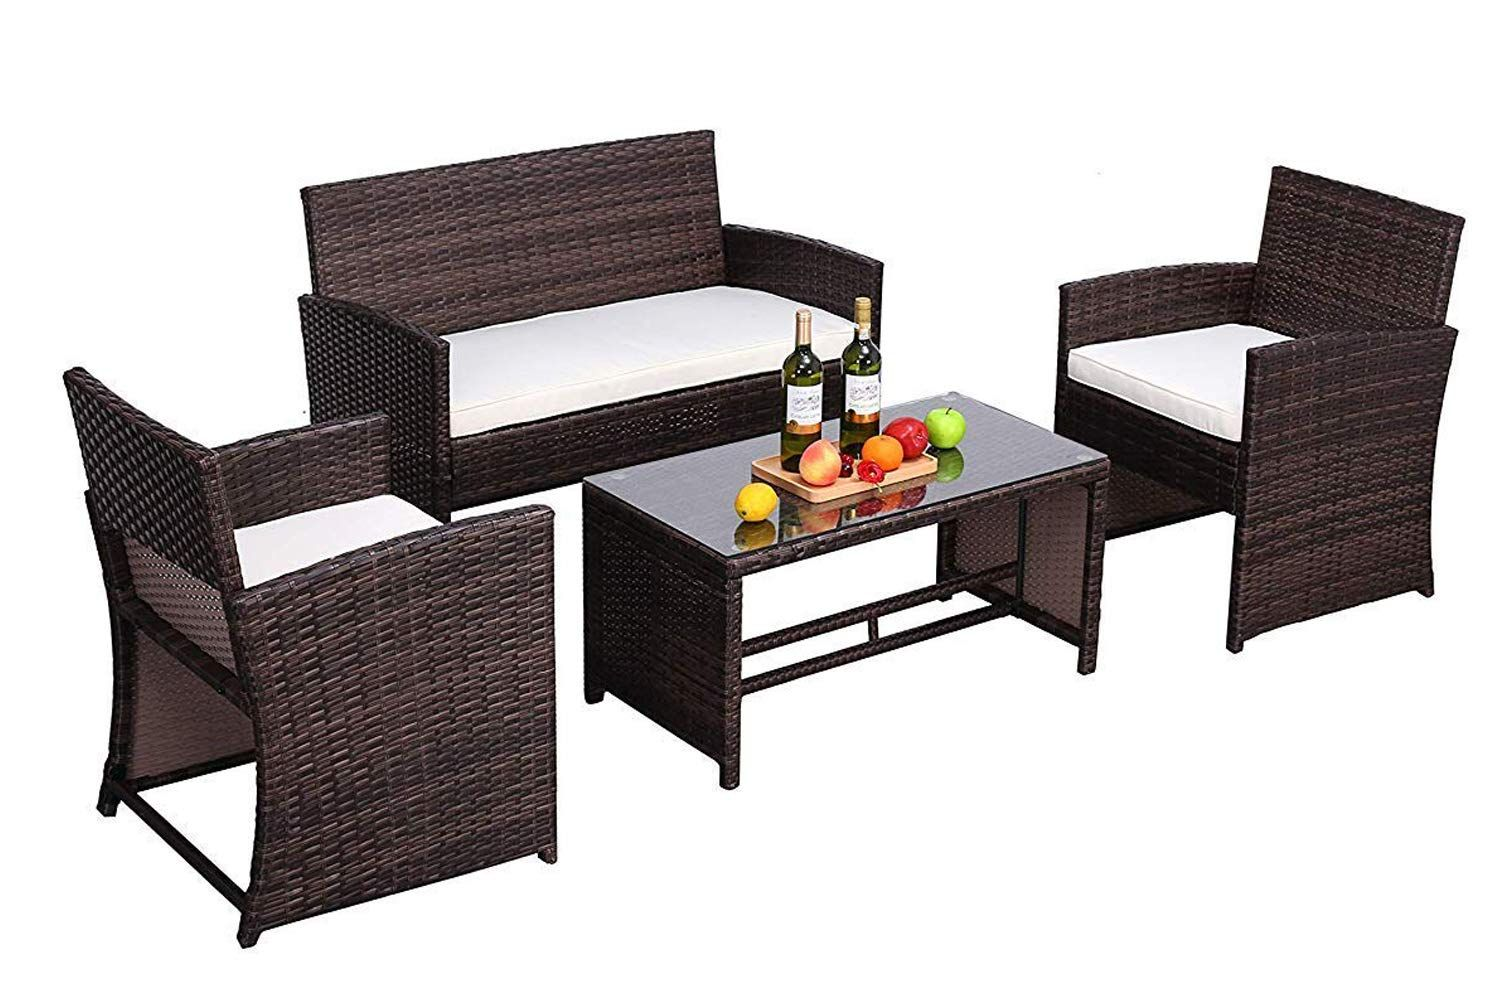 Do4u Outdoor Patio Furniture Set 4 Pcs Pe Rattan Wicker Garden Sofa And Chairs Set With Beige Cushion With Table Mix Beige